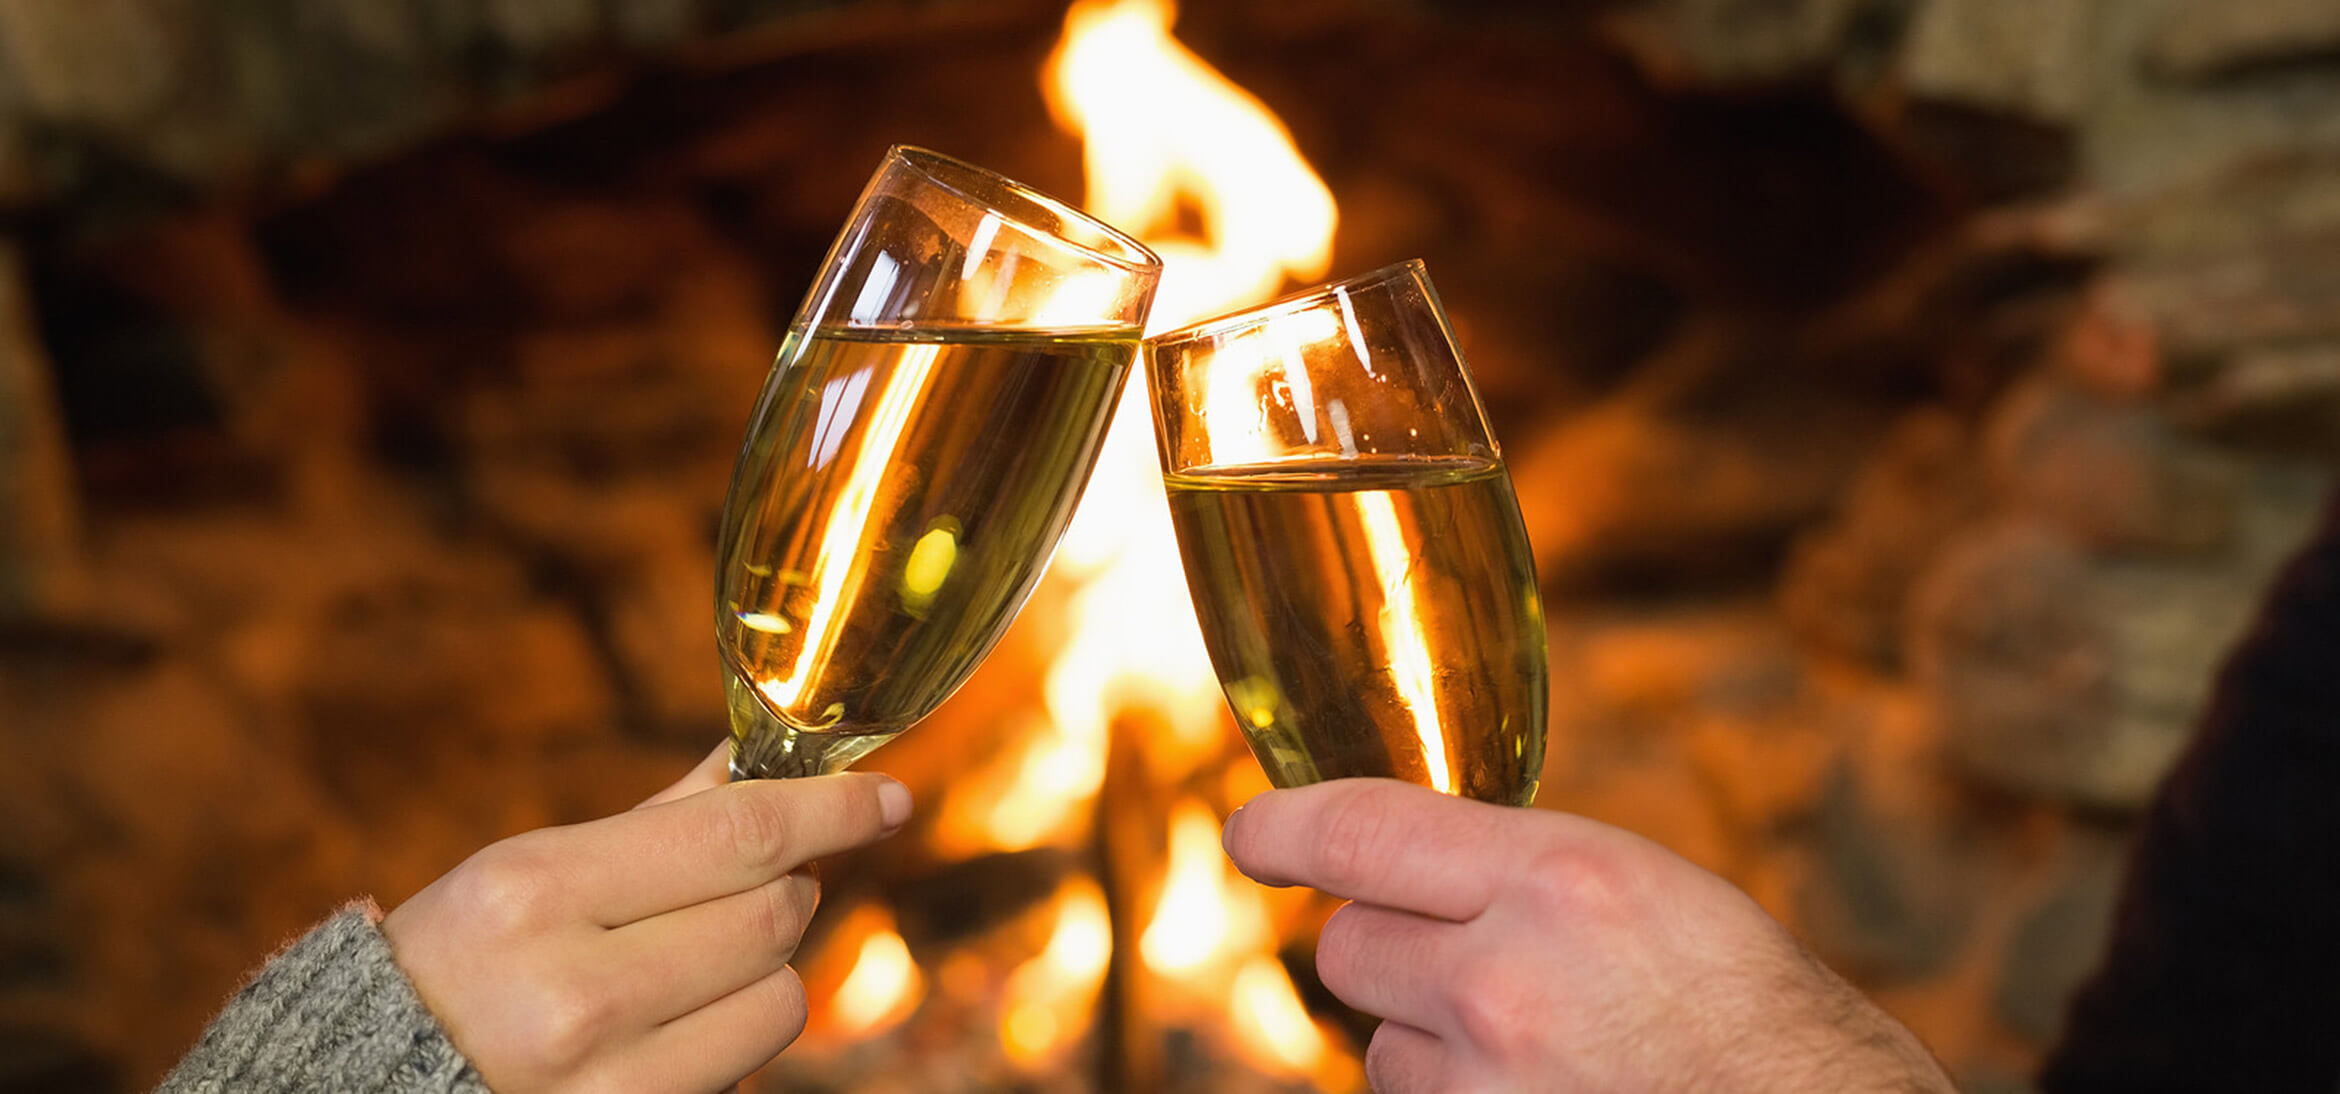 Champagne glasses in front of the fire